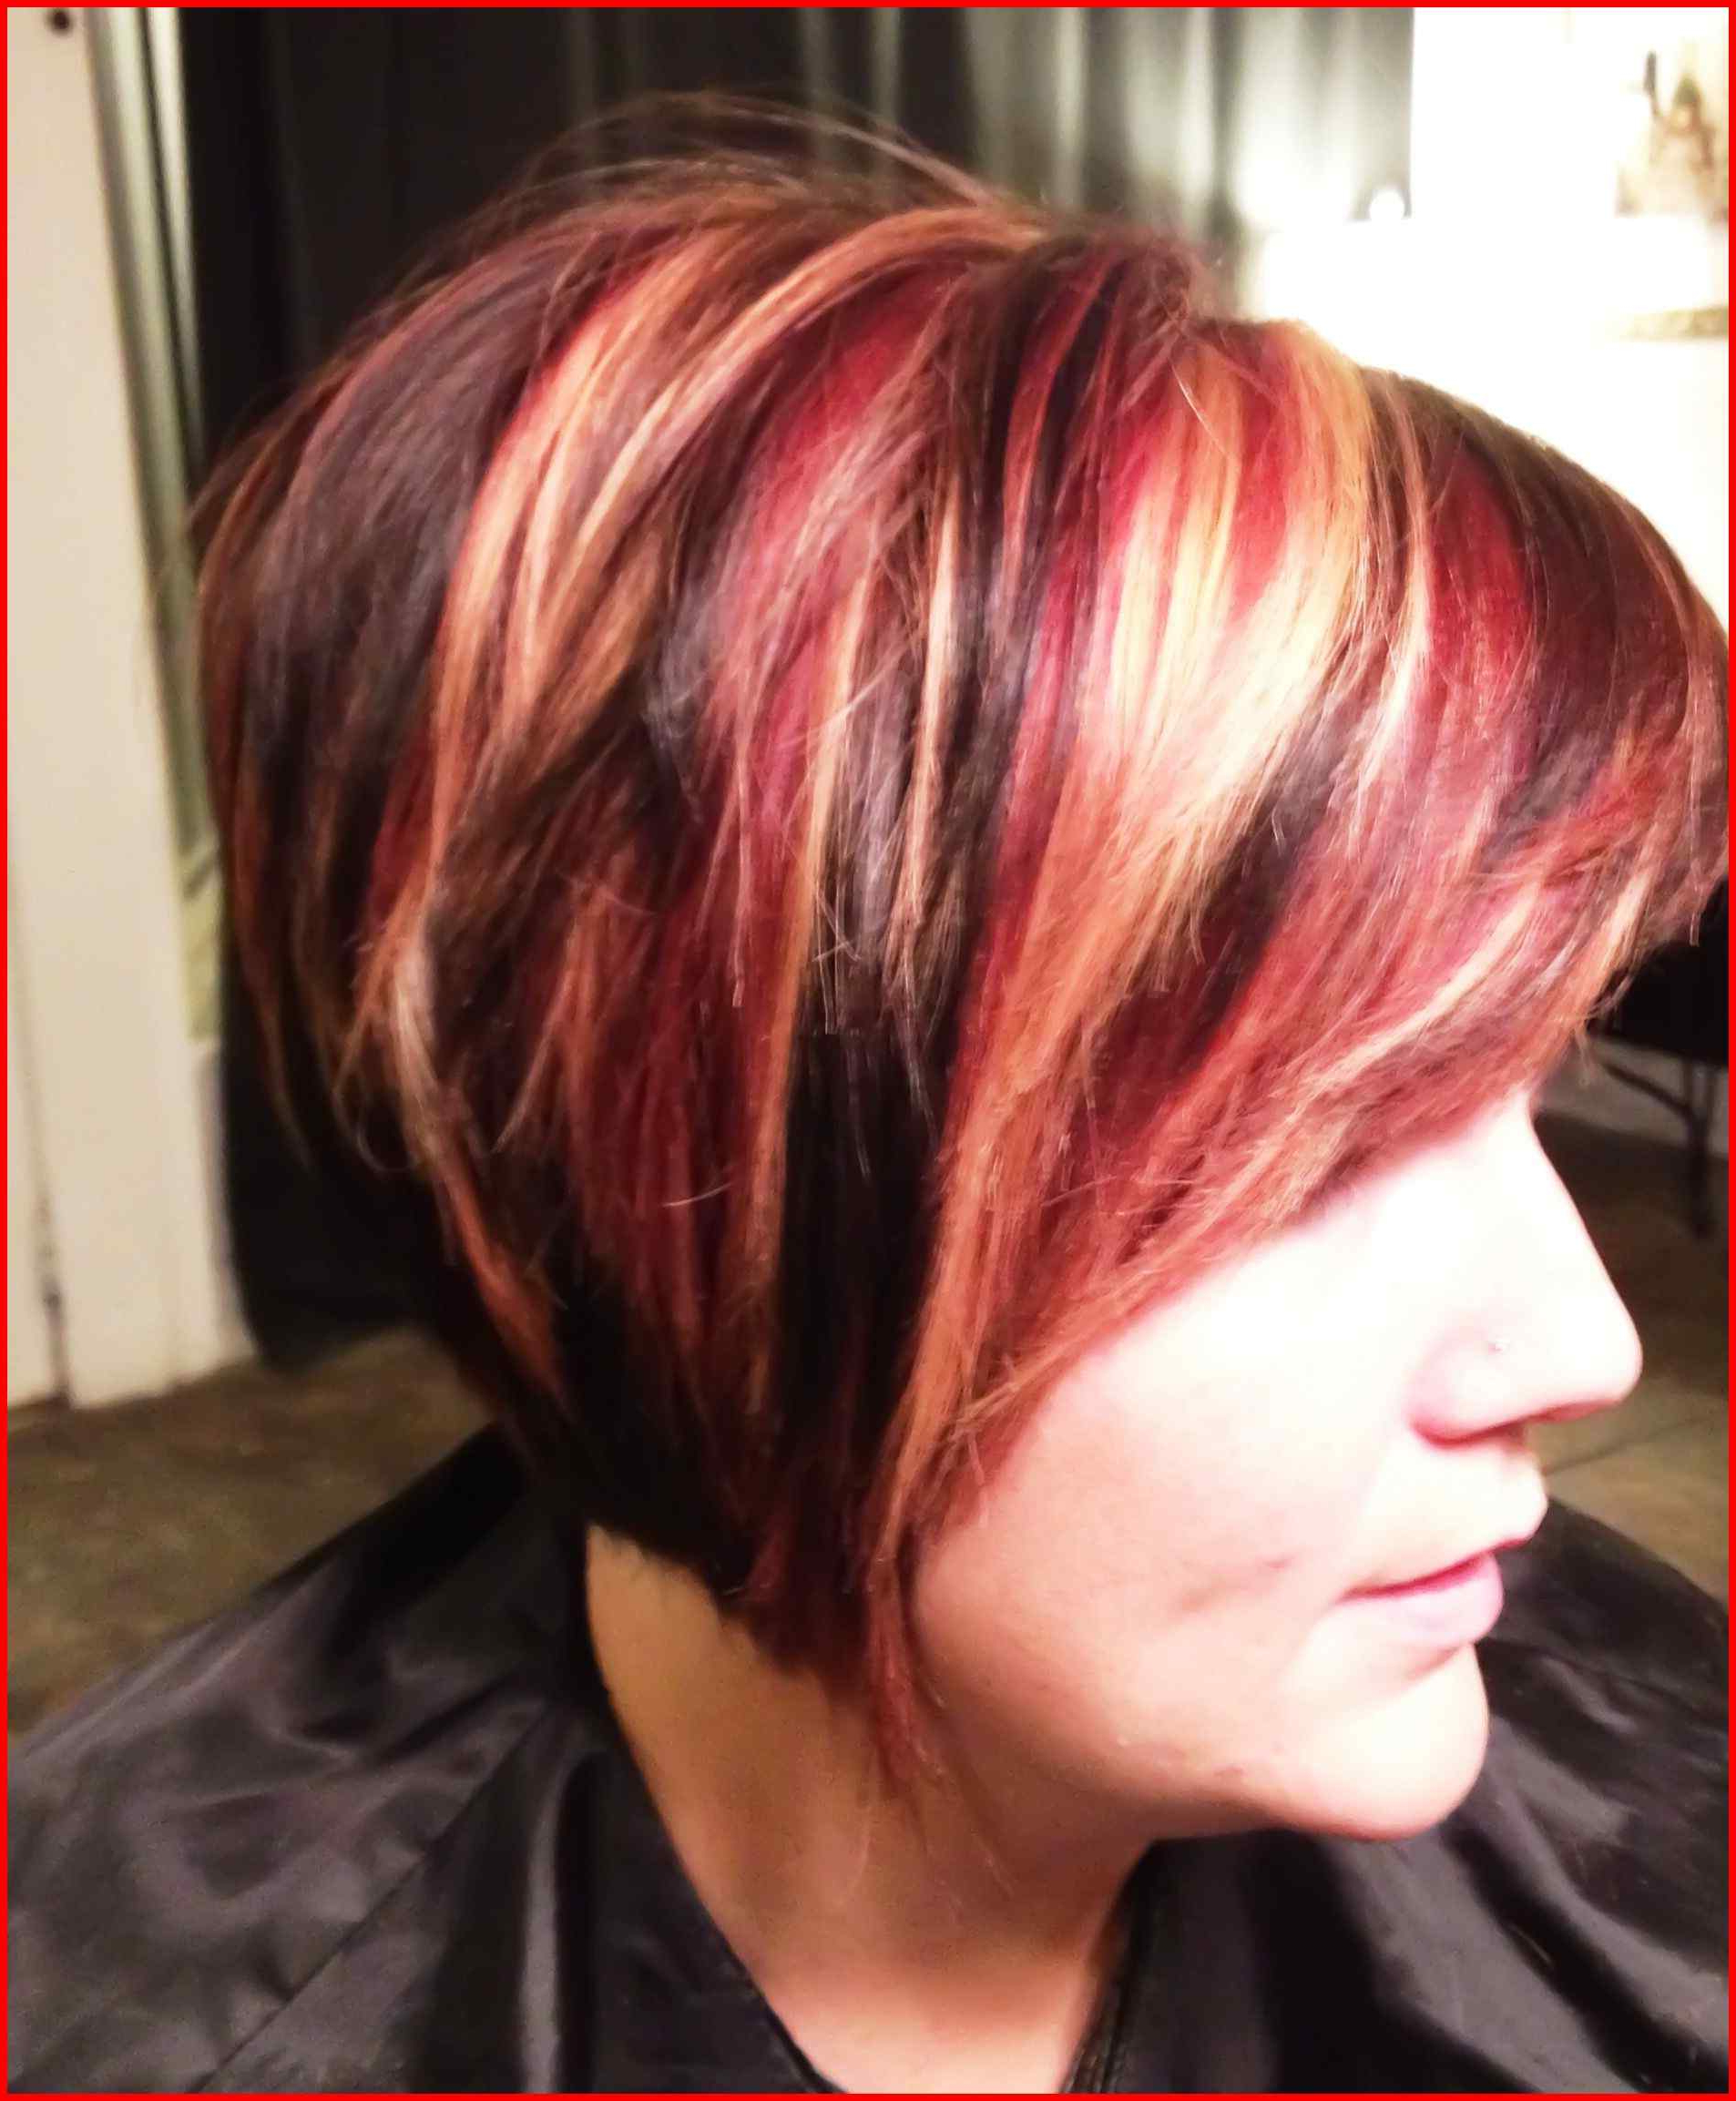 Fall Hair Color For Blondes Balayage Short Inspirational Fall Hair With Short Haircuts With Red And Blonde Highlights (View 5 of 25)